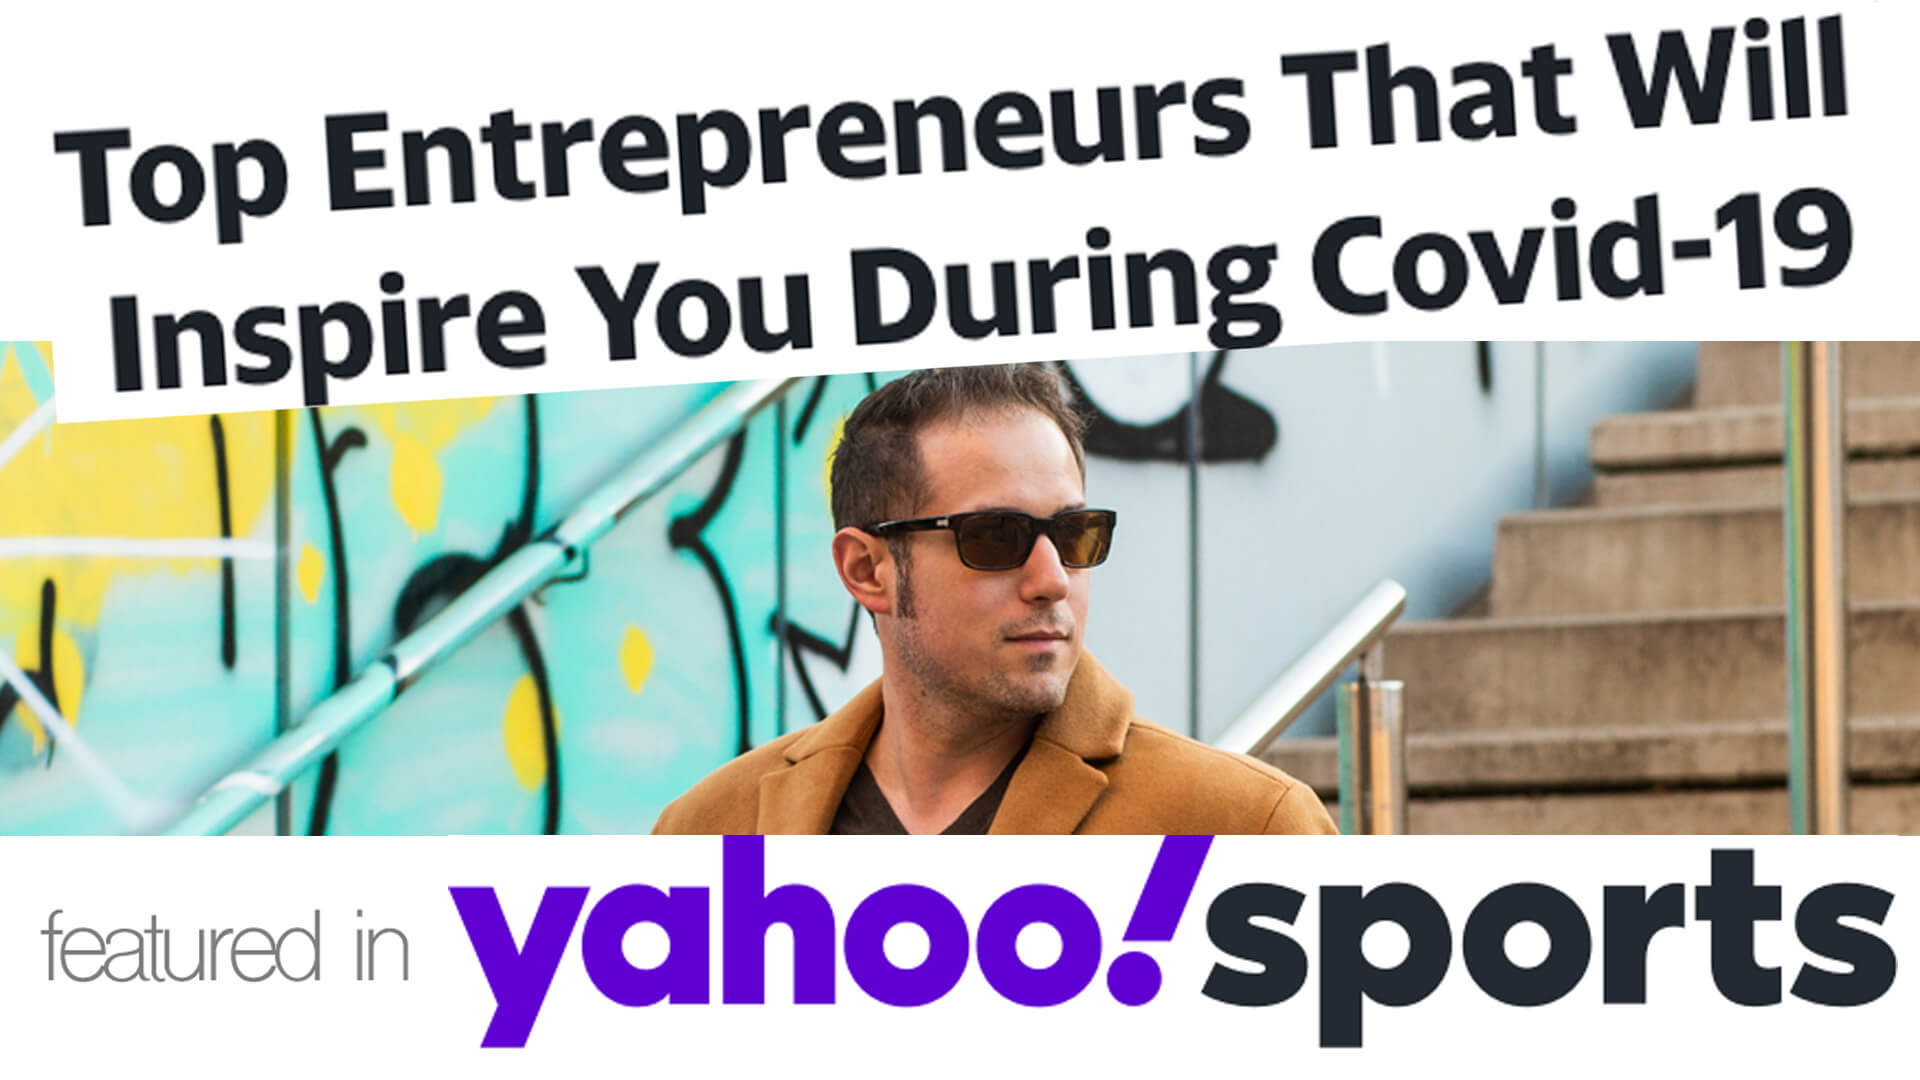 Top Entrepreneurs That Will Inspire You During COVID-19